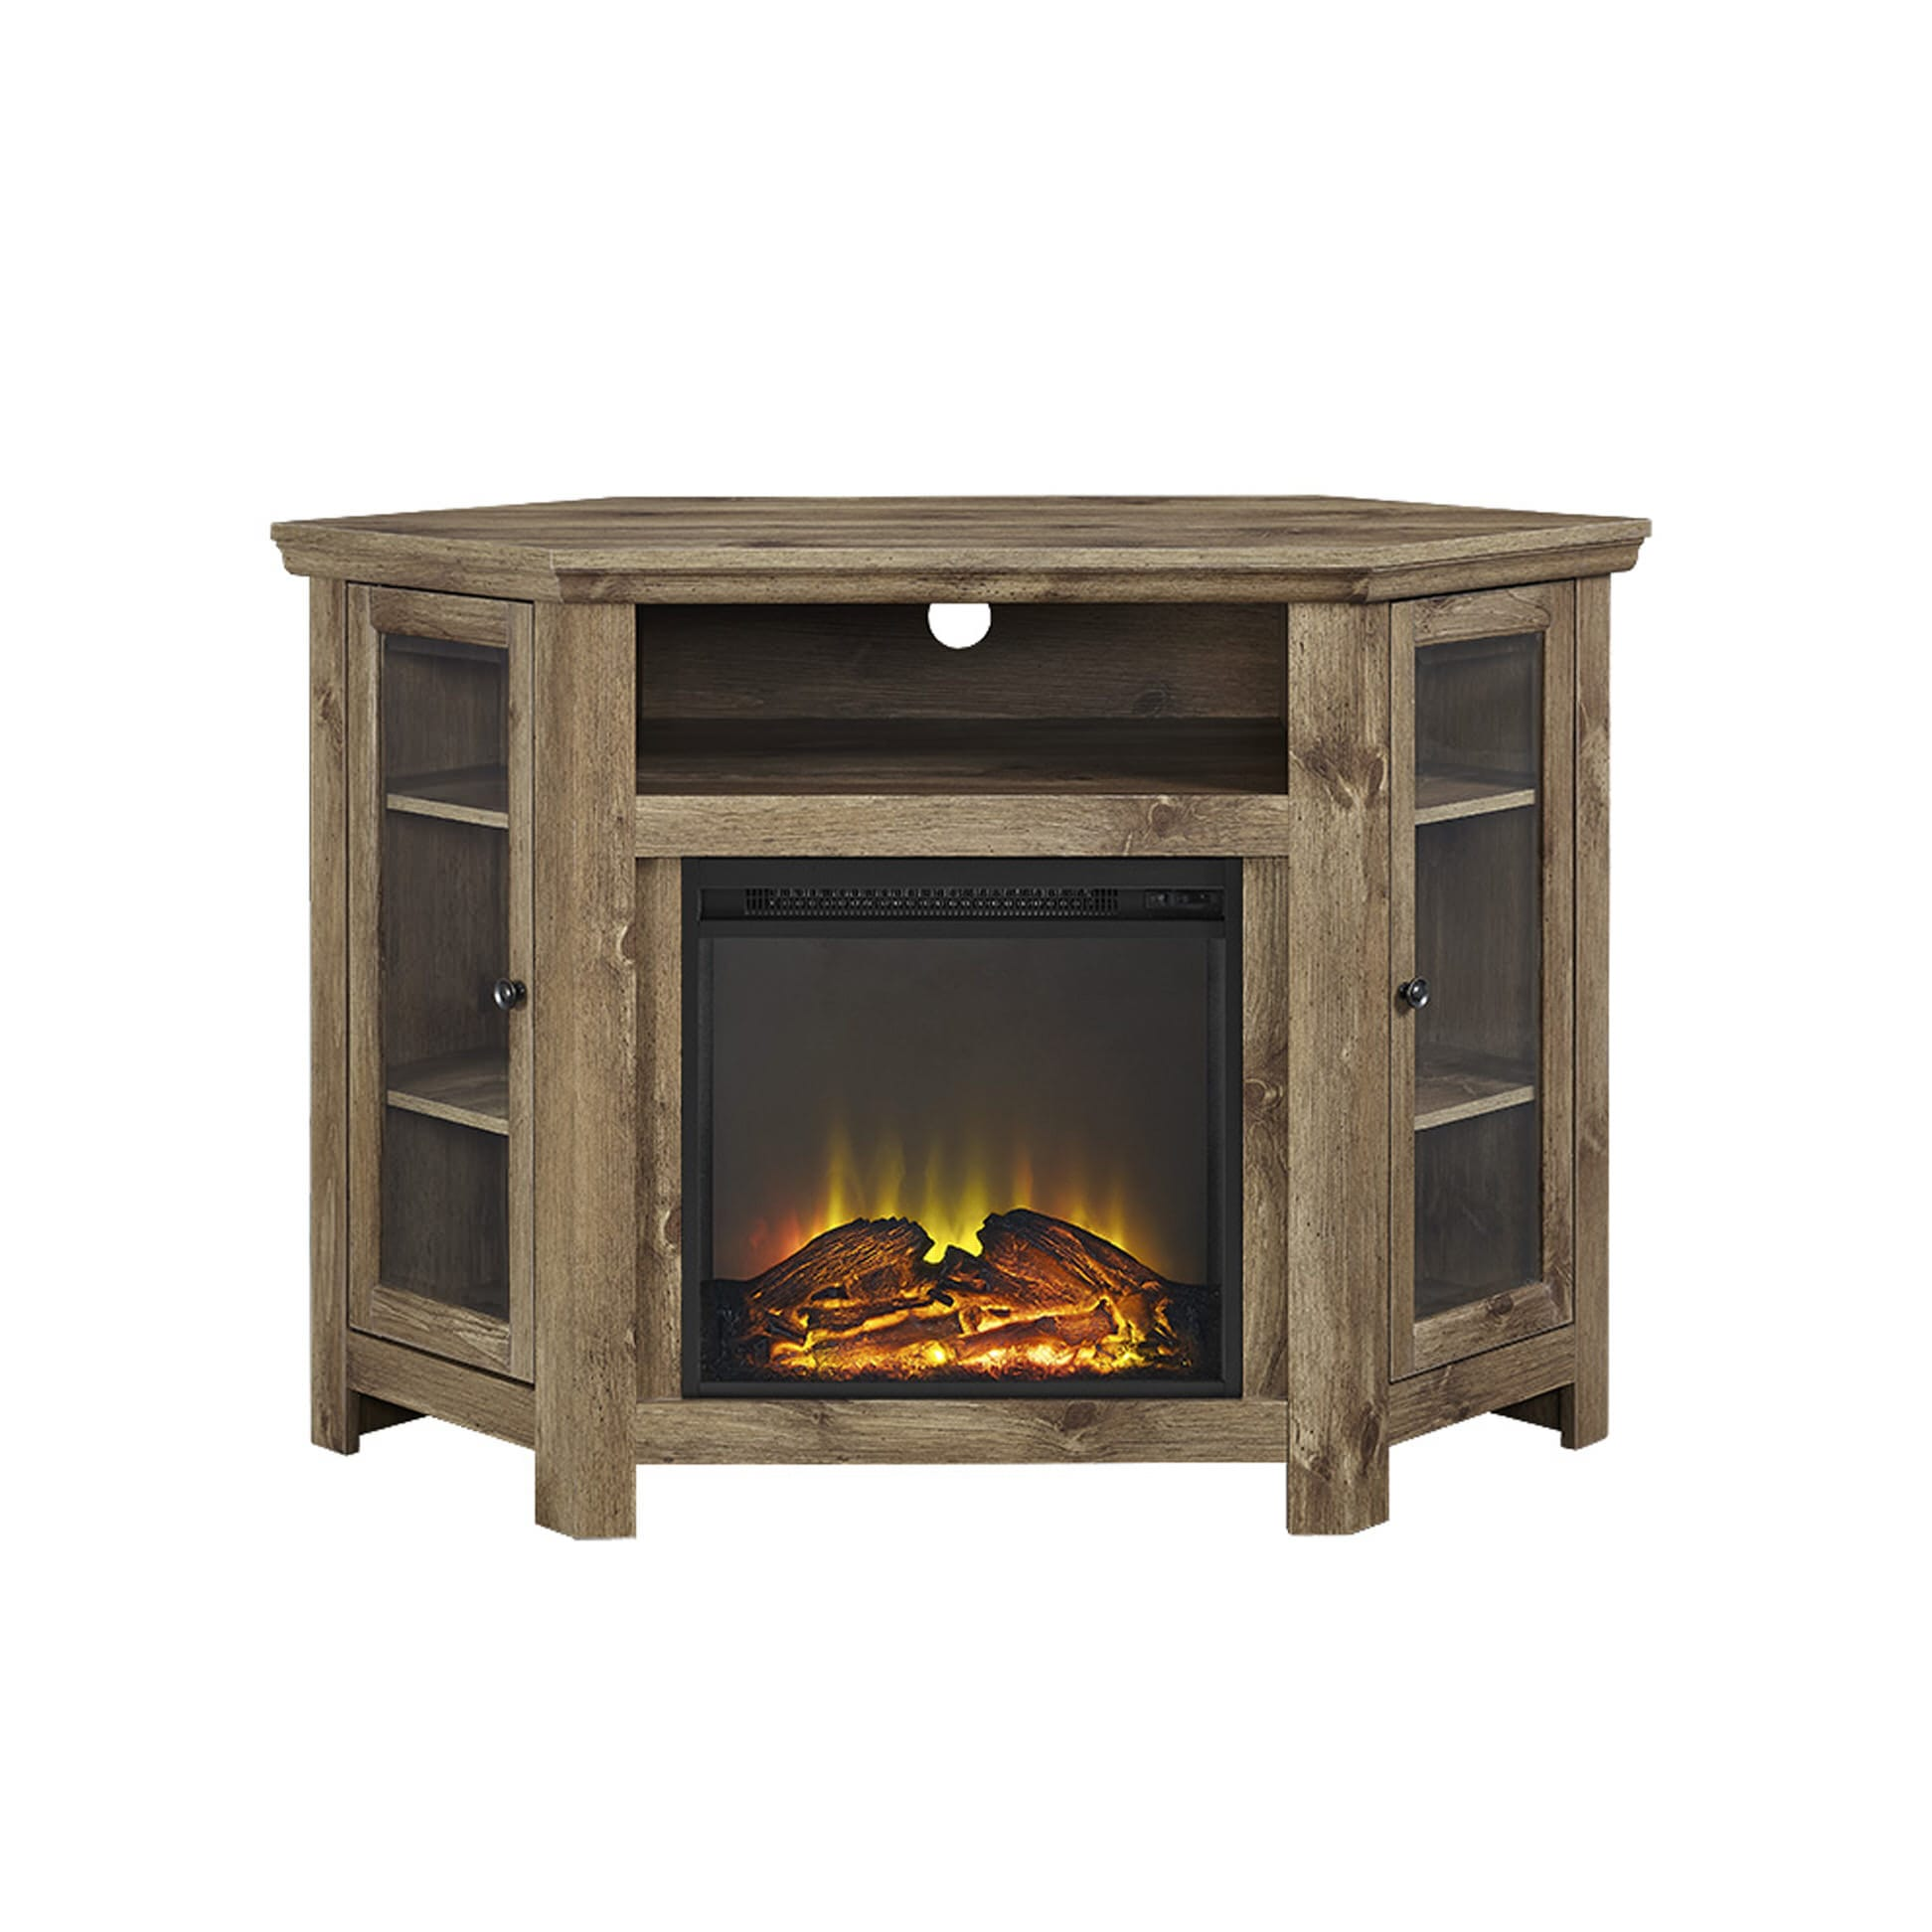 Jackson 48 Inch Corner Fireplace TV Stand - Barnwood by ...